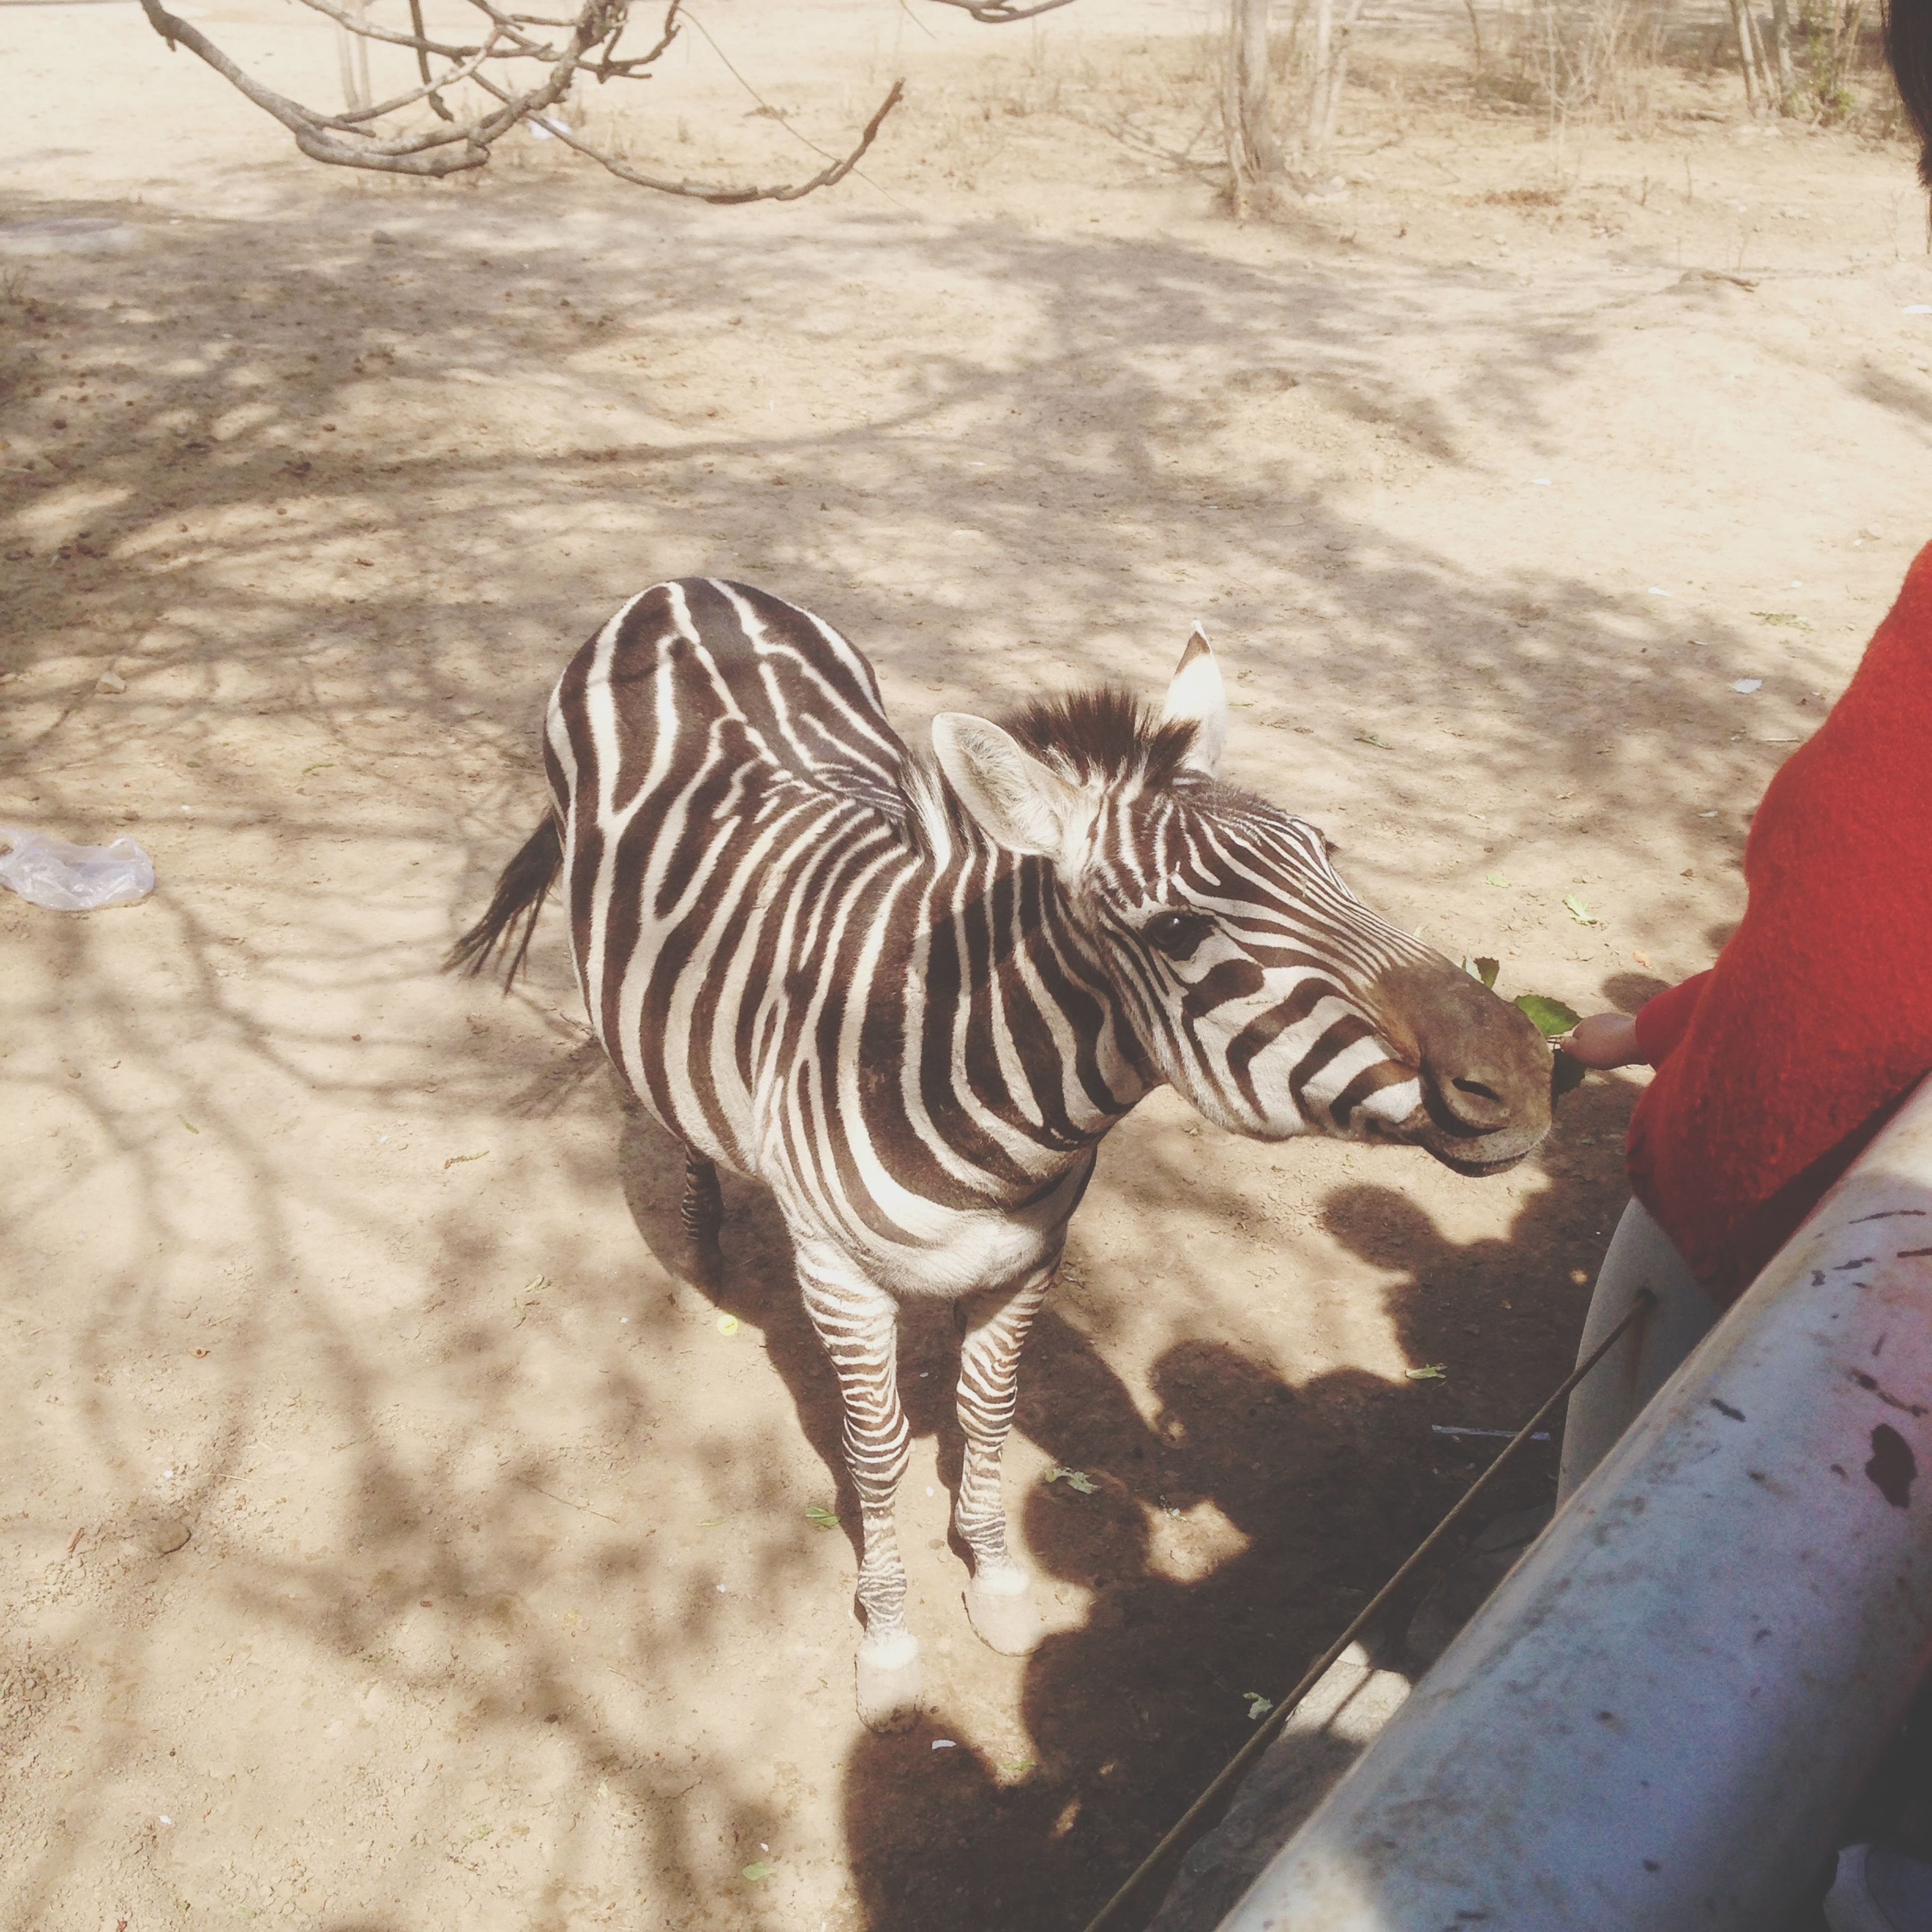 animal themes, one animal, animals in the wild, wildlife, mammal, striped, animal markings, high angle view, zebra, zoo, full length, safari animals, zoology, nature, natural pattern, standing, outdoors, day, no people, sunlight